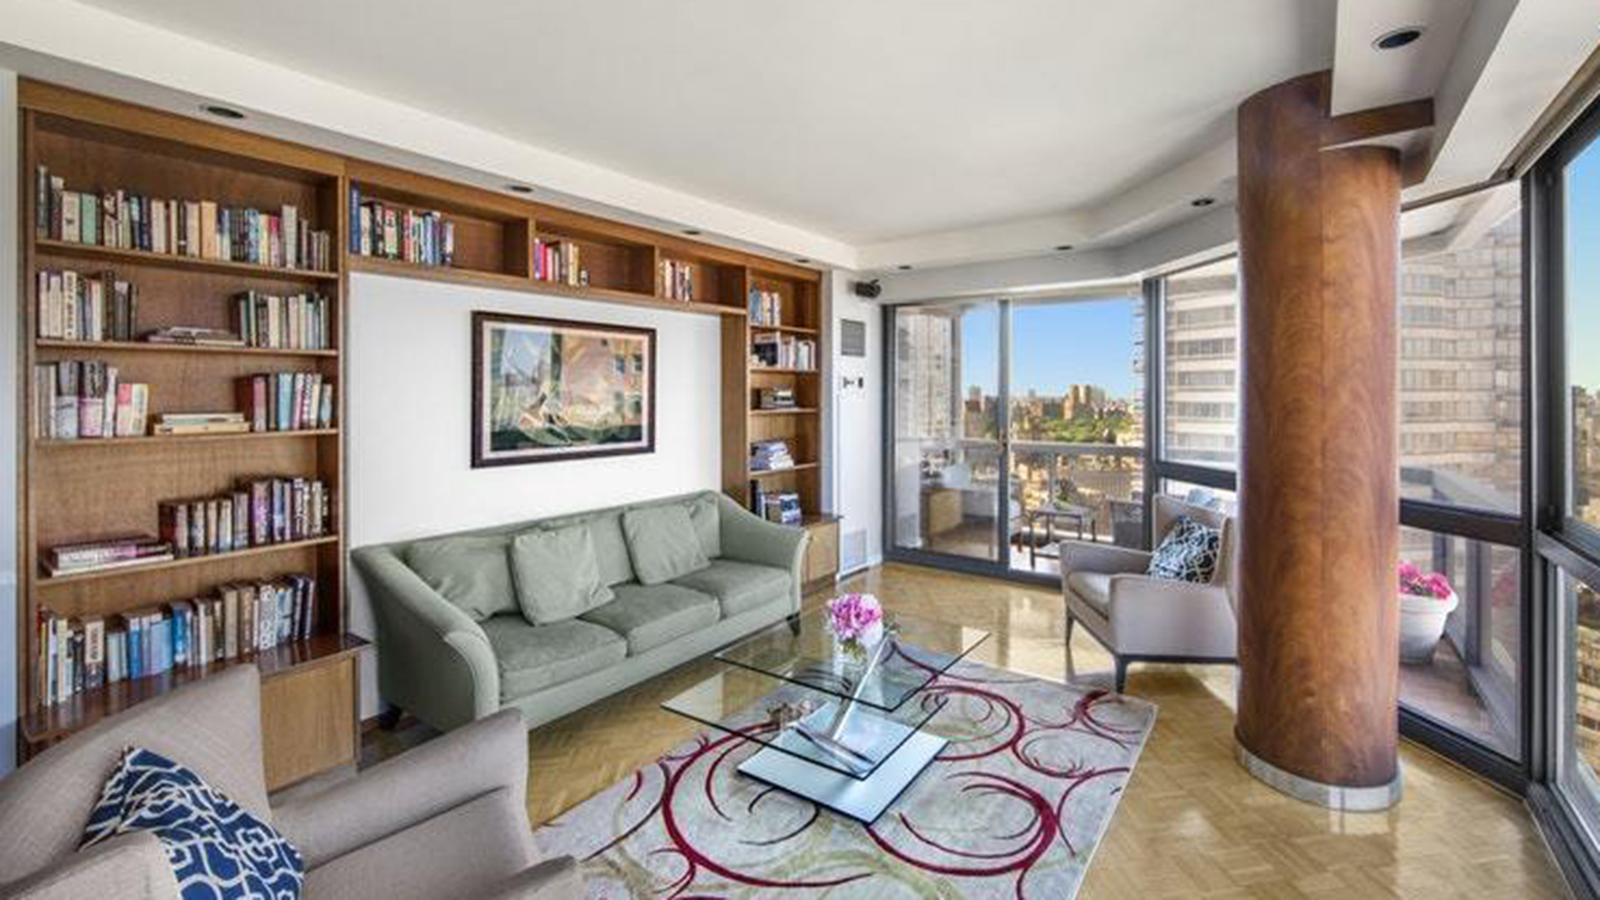 The Savoy, 200 East 61st Street, NYC - Condo Apartments